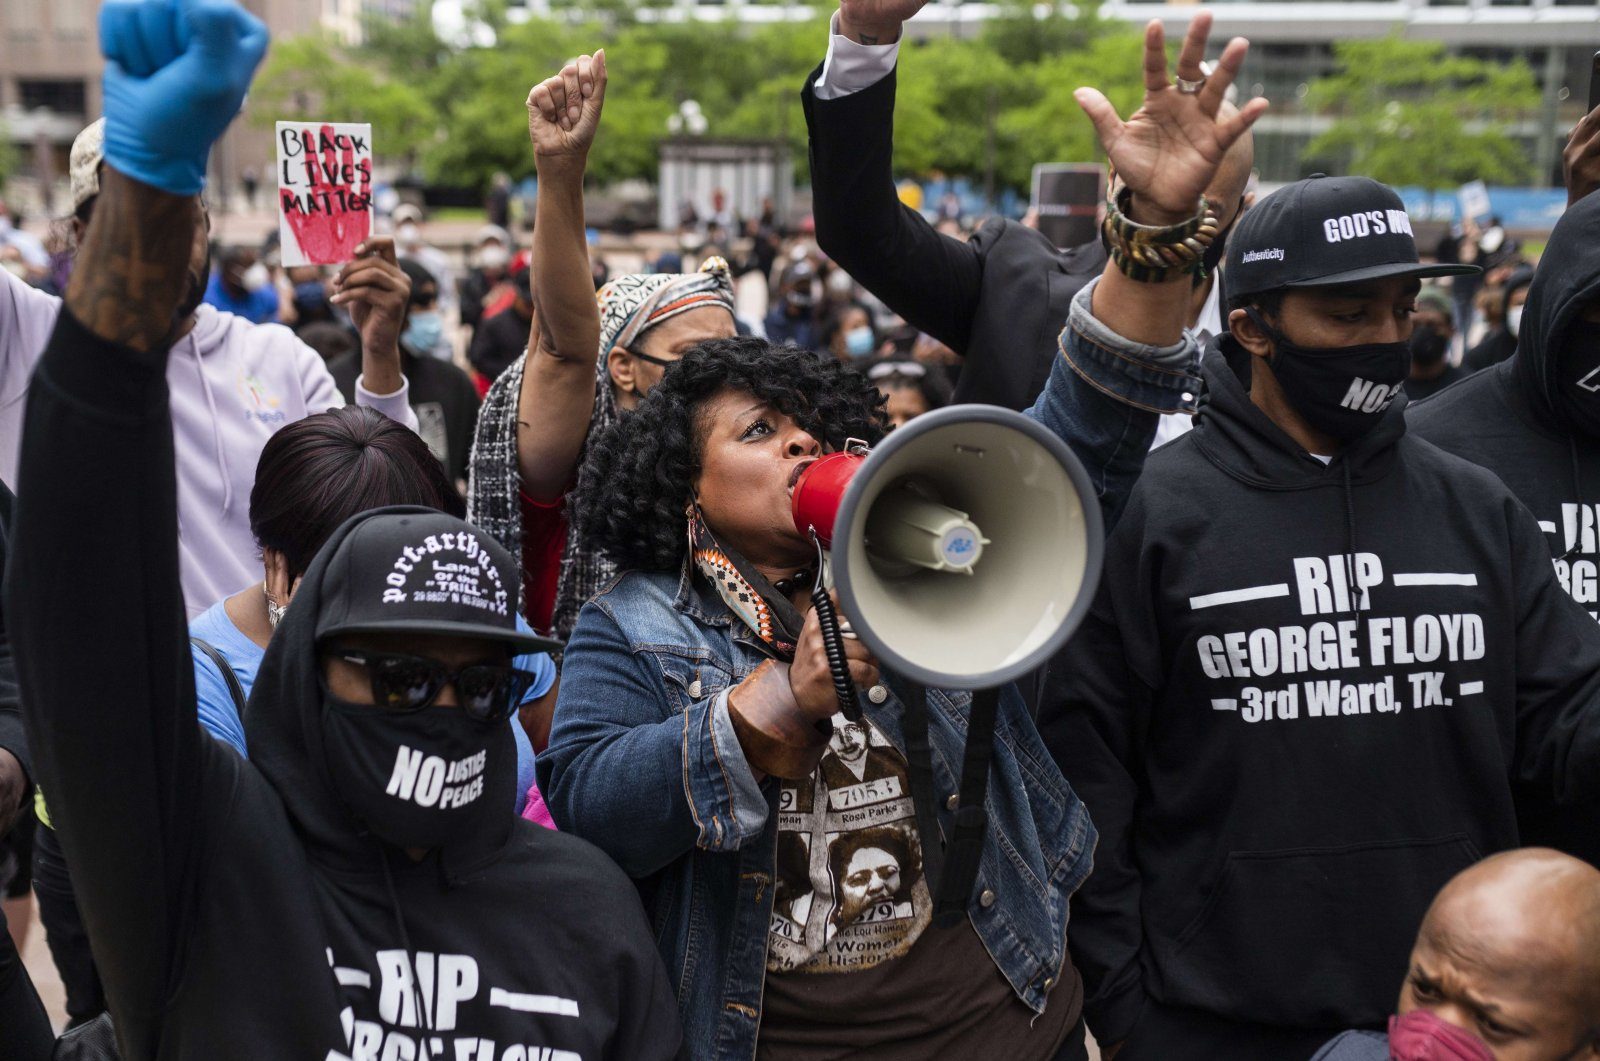 Jamela J. Pettiford sings during a protest with Former NBA player Stephen Jackson in response to the police killing of George Floyd outside the Hennepin County Government Center on May 29, 2020 in Minneapolis, Minn. (AFP Photo)